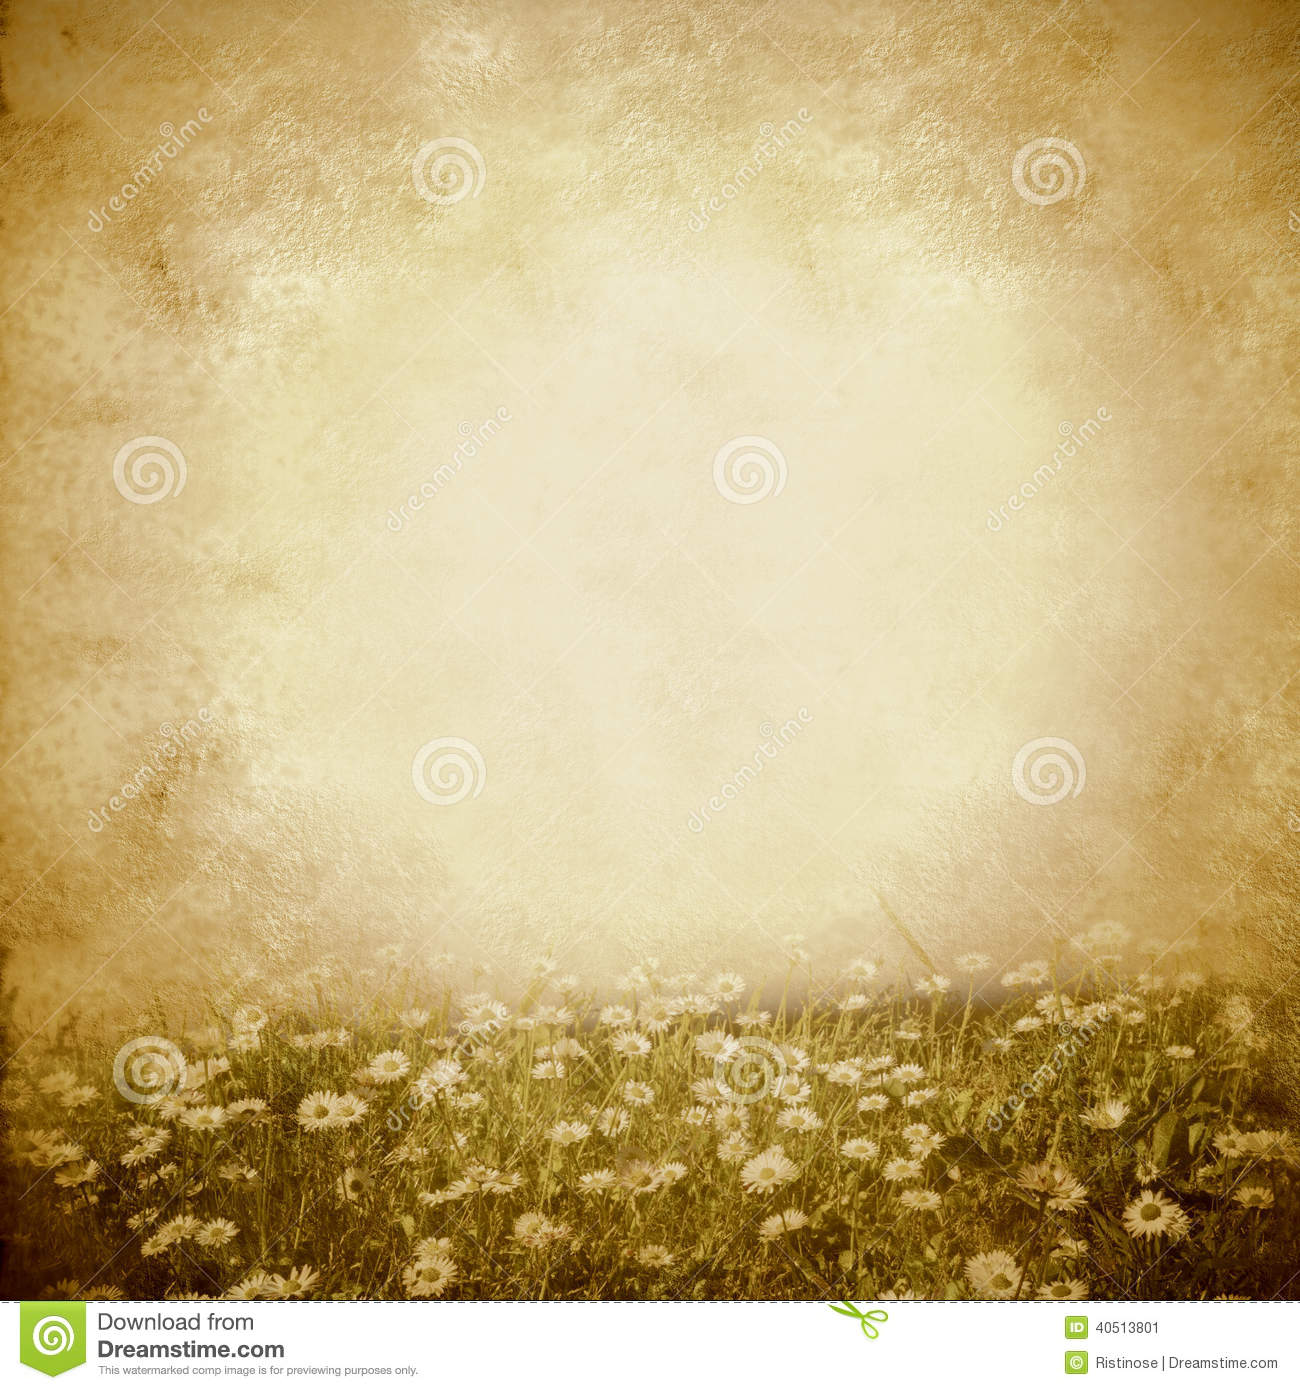 Daisies Spring Meadow Vintage Background Stock Photo